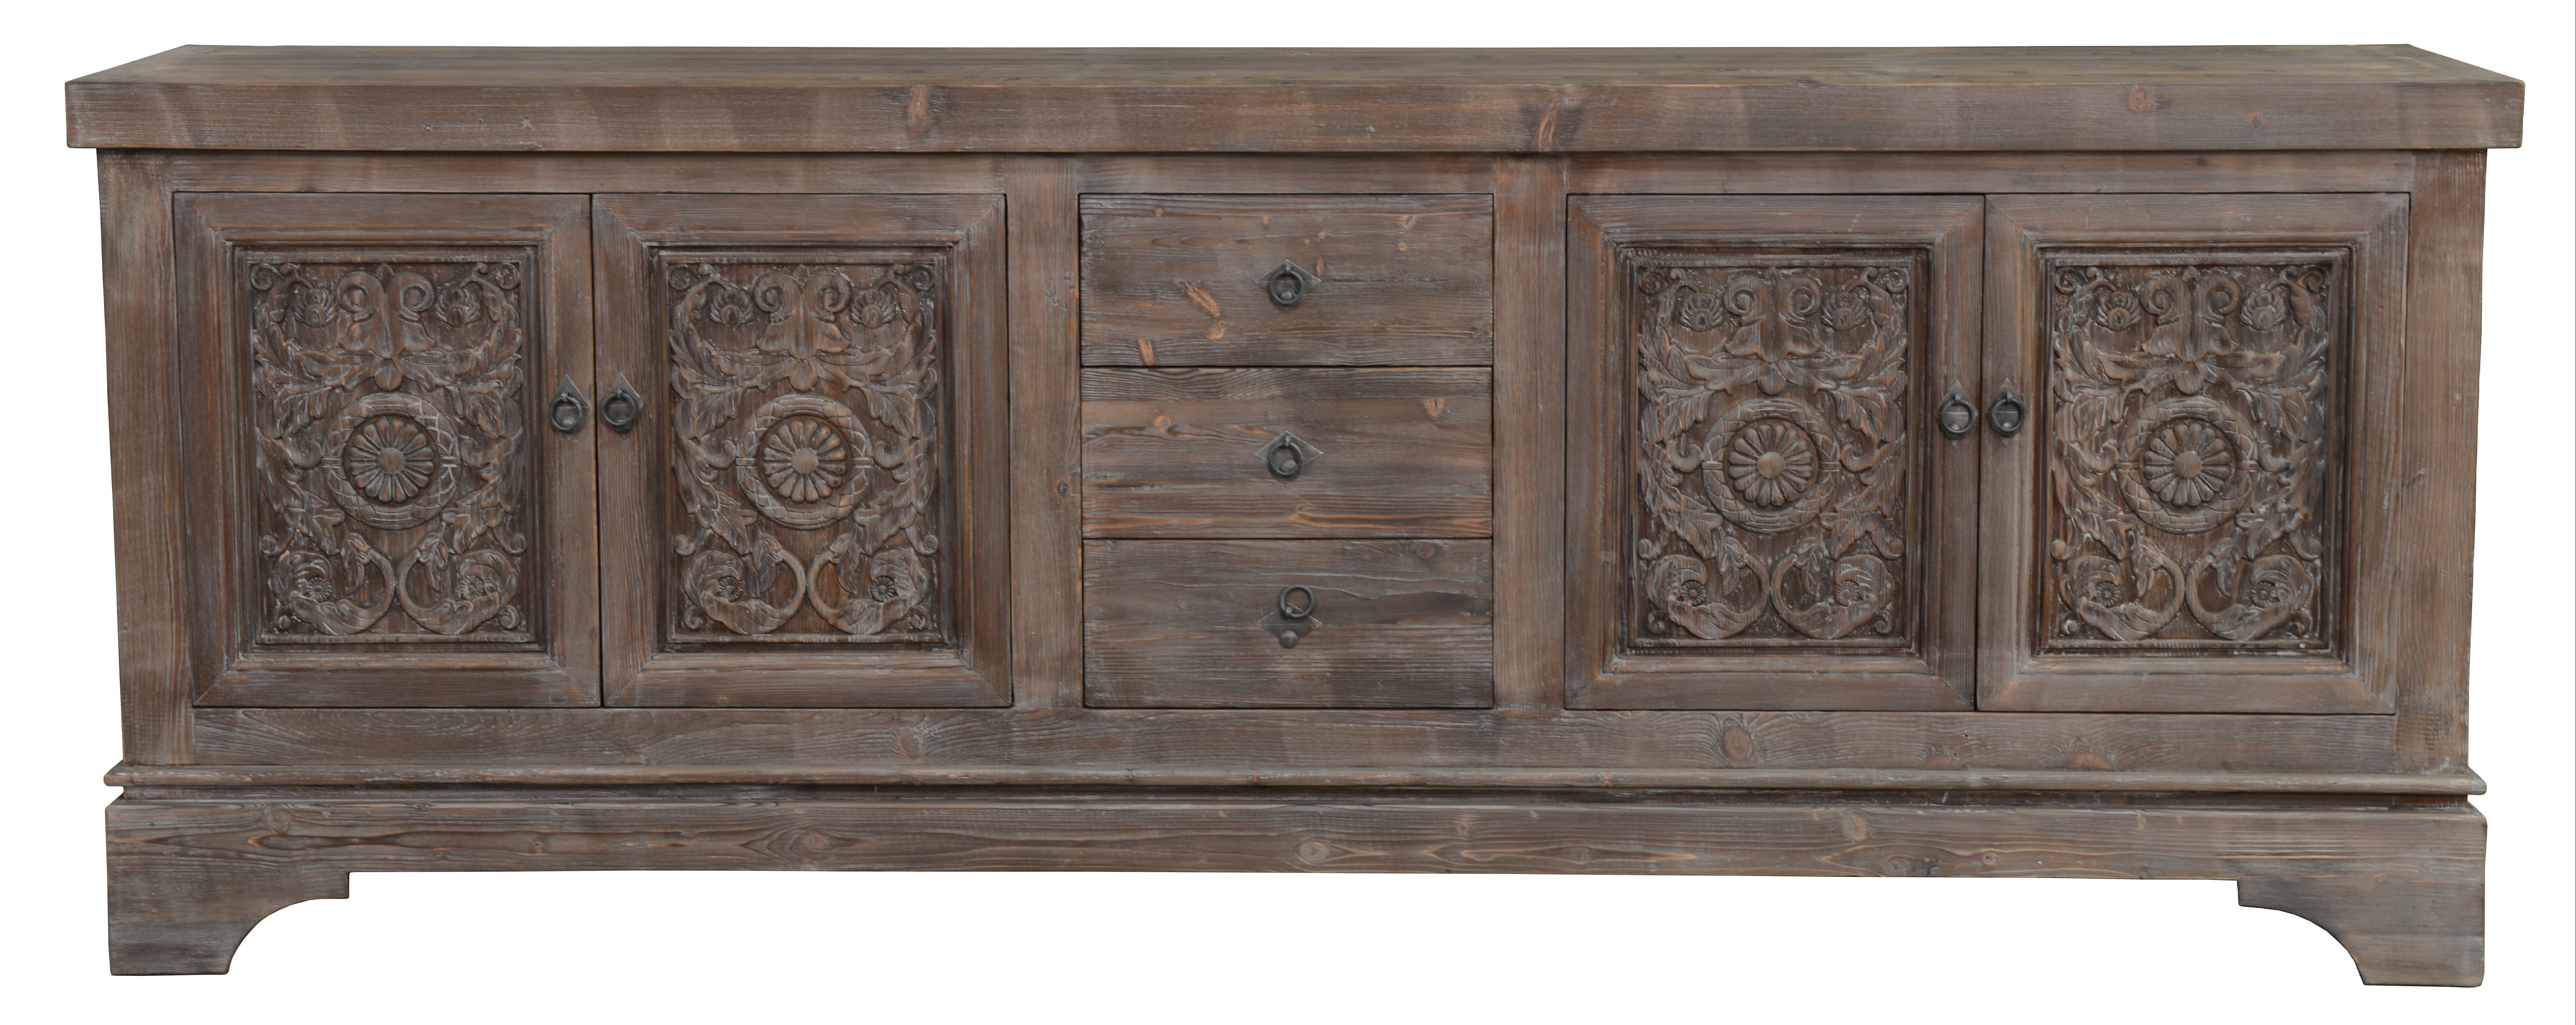 Wayfair Throughout Most Current Seven Seas Asian Sideboards (View 17 of 20)